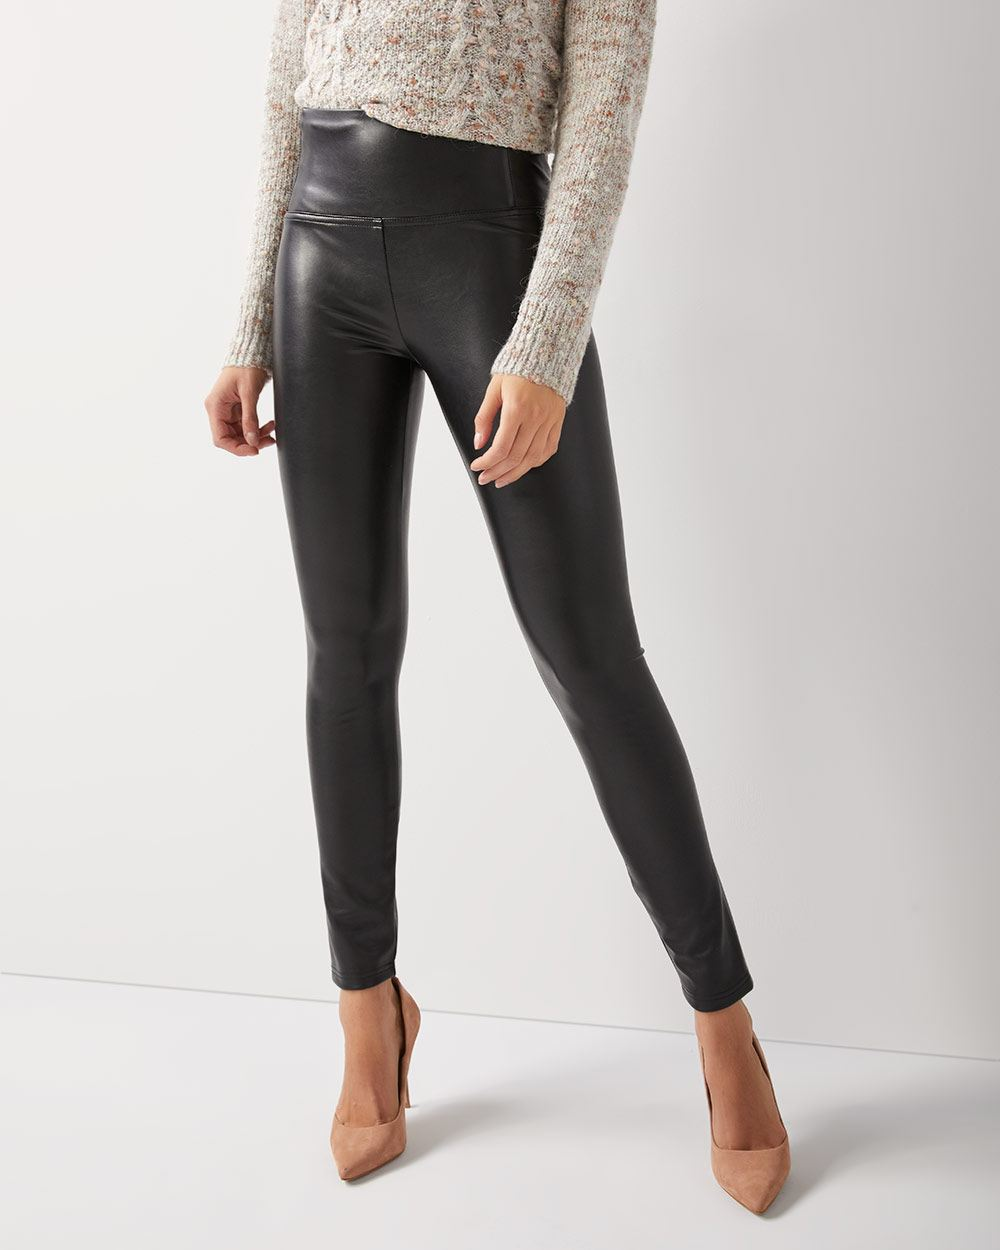 da574ae92726a7 High-waist Faux-leather legging | RW&CO.